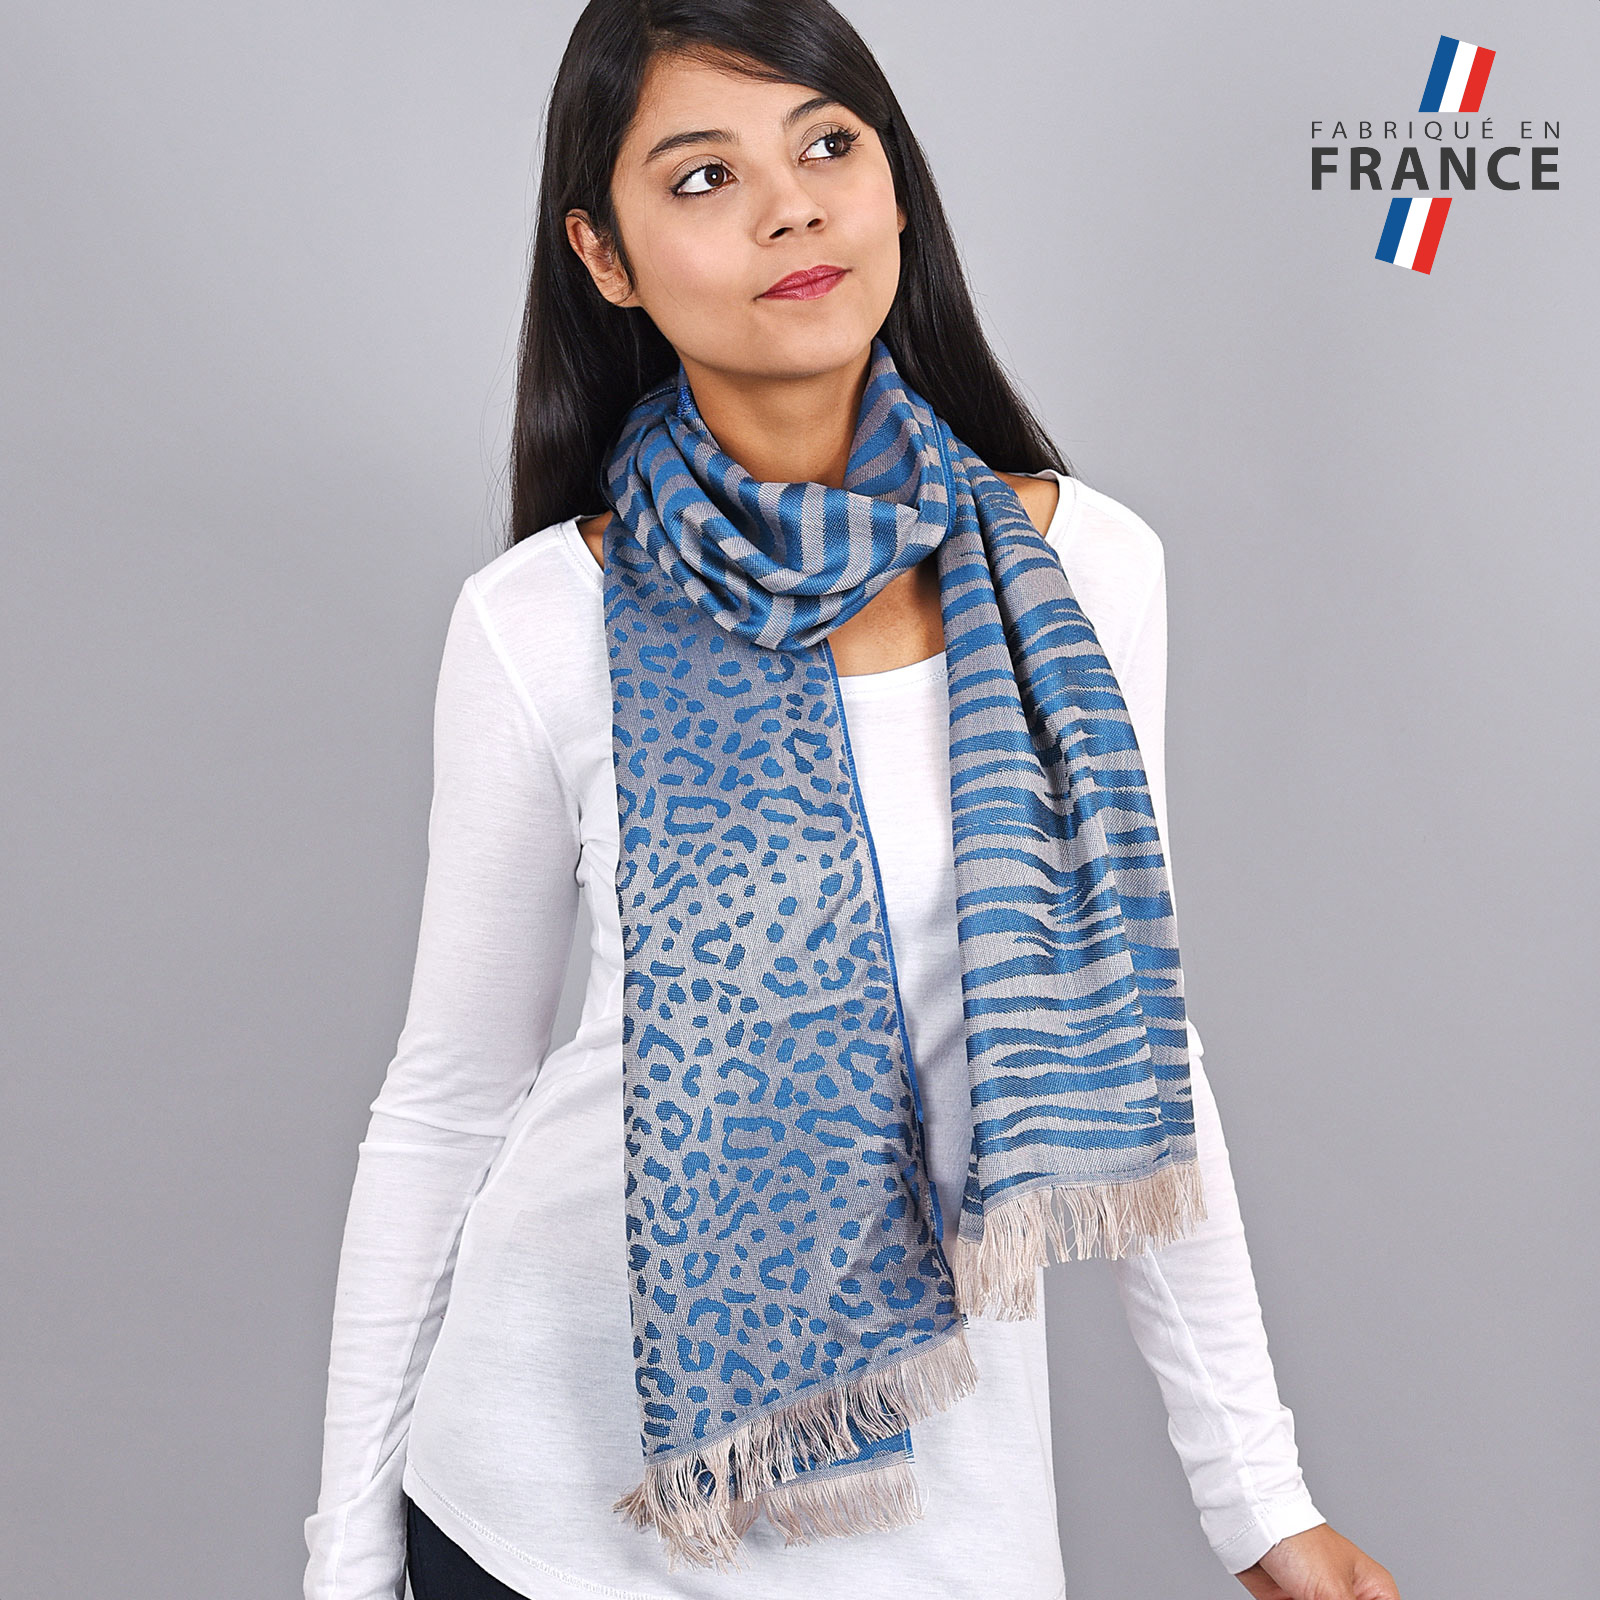 AT-04255-VF16-LB_FR-echarpe-legere-tigre-paillettes-bleu